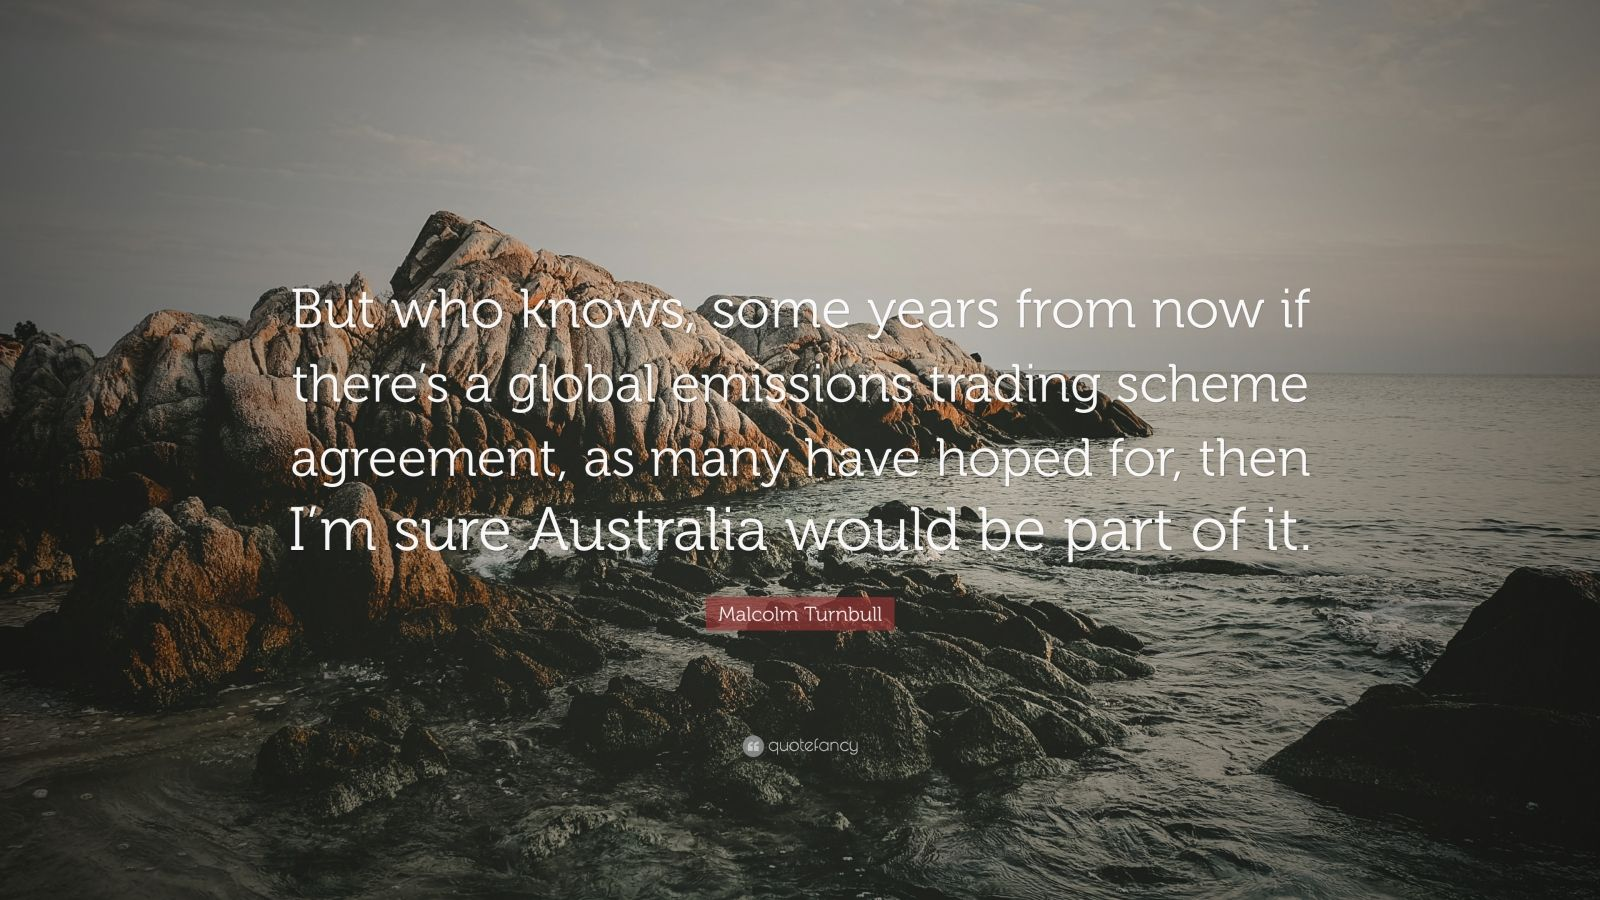 """Malcolm Turnbull Quote: """"But who knows, some years from now if there's a global emissions trading scheme agreement, as many have hoped for, then I'm sure Australia would be part of it."""""""